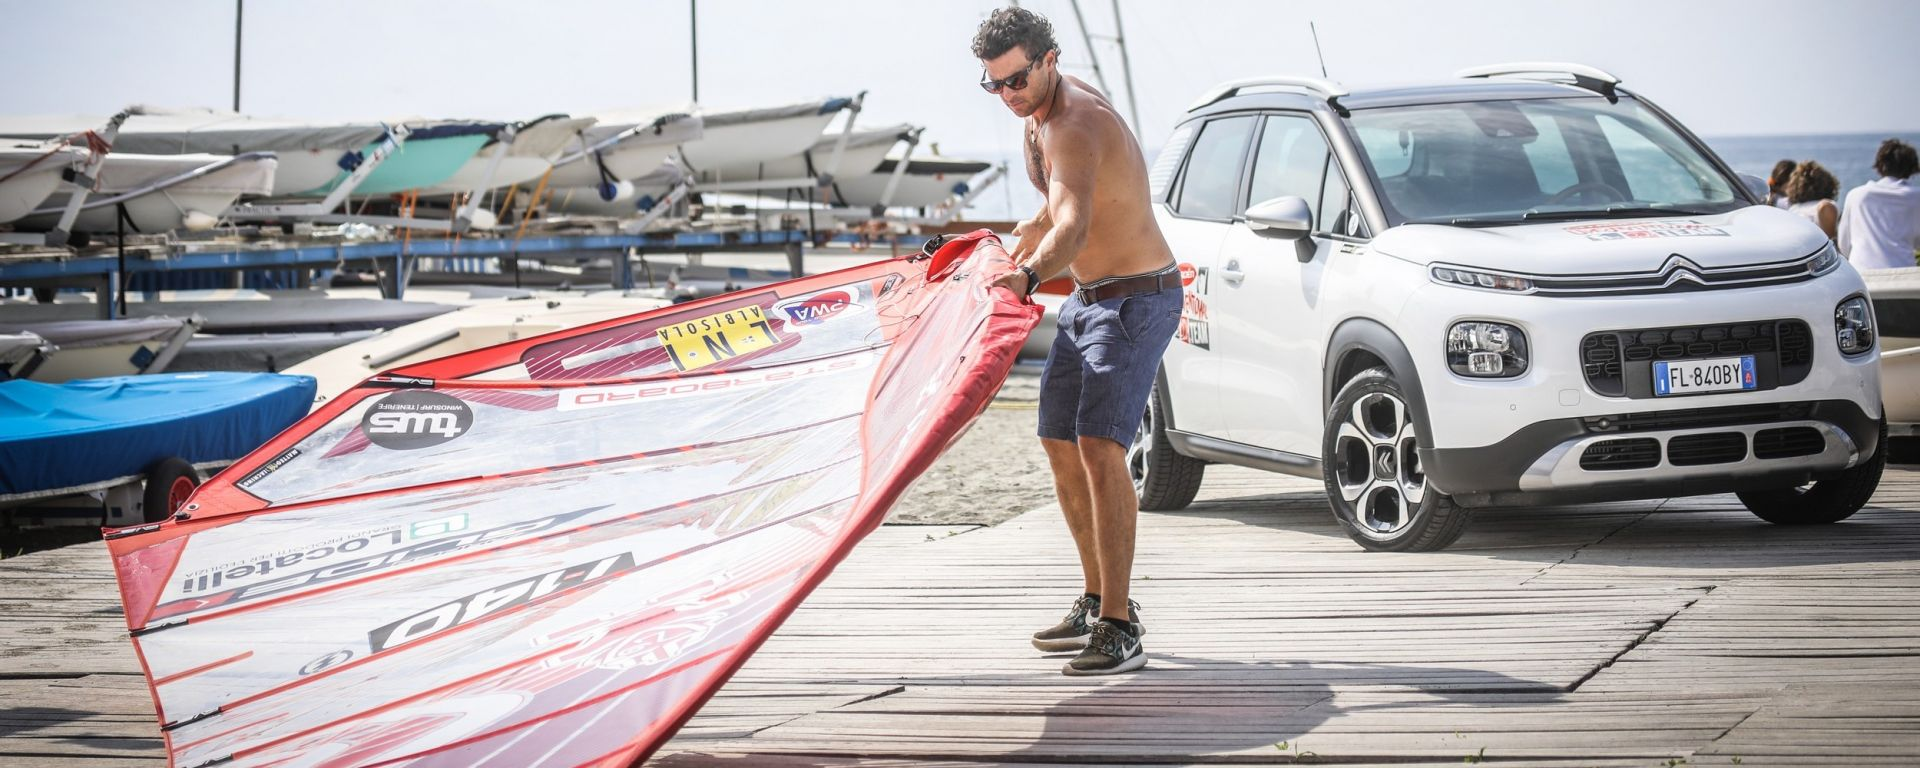 Matteo Iachino: sul windsurf come in MotoGP